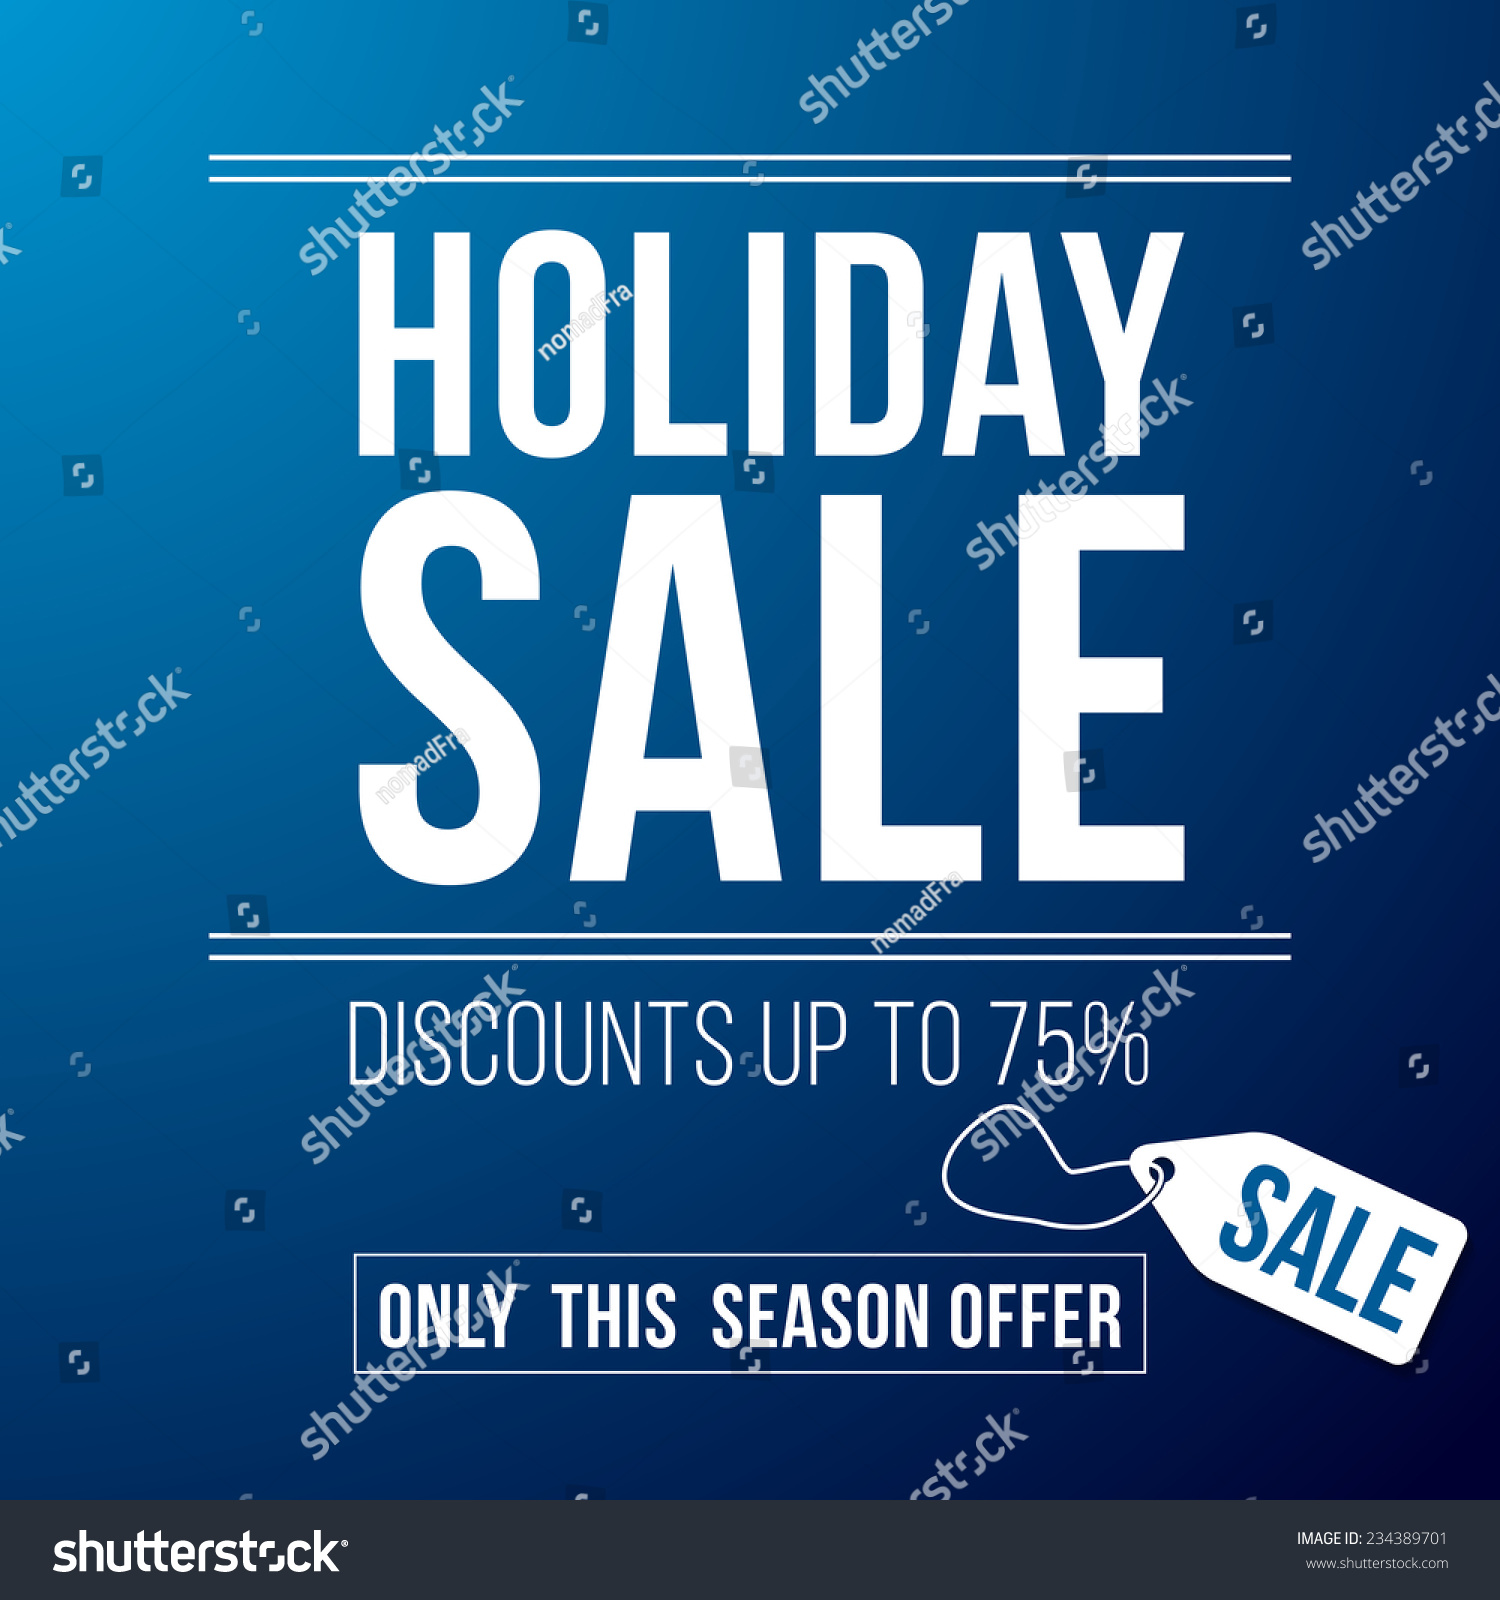 Holiday Sale Ad Designed In A Modern Flat Style On Blue Background